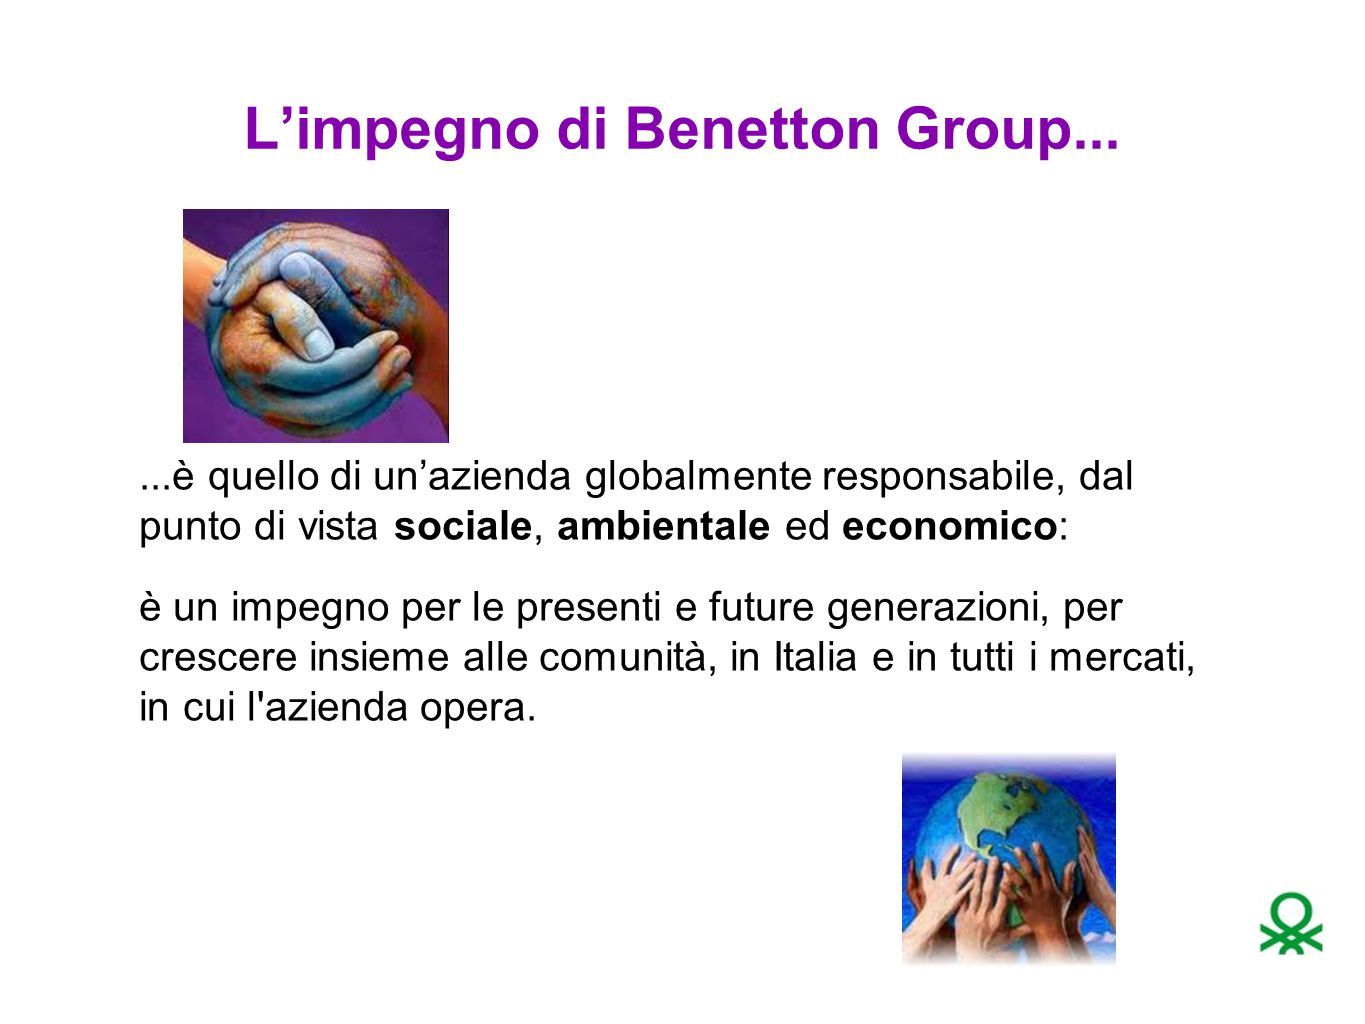 L'impegno di Benetton Group...